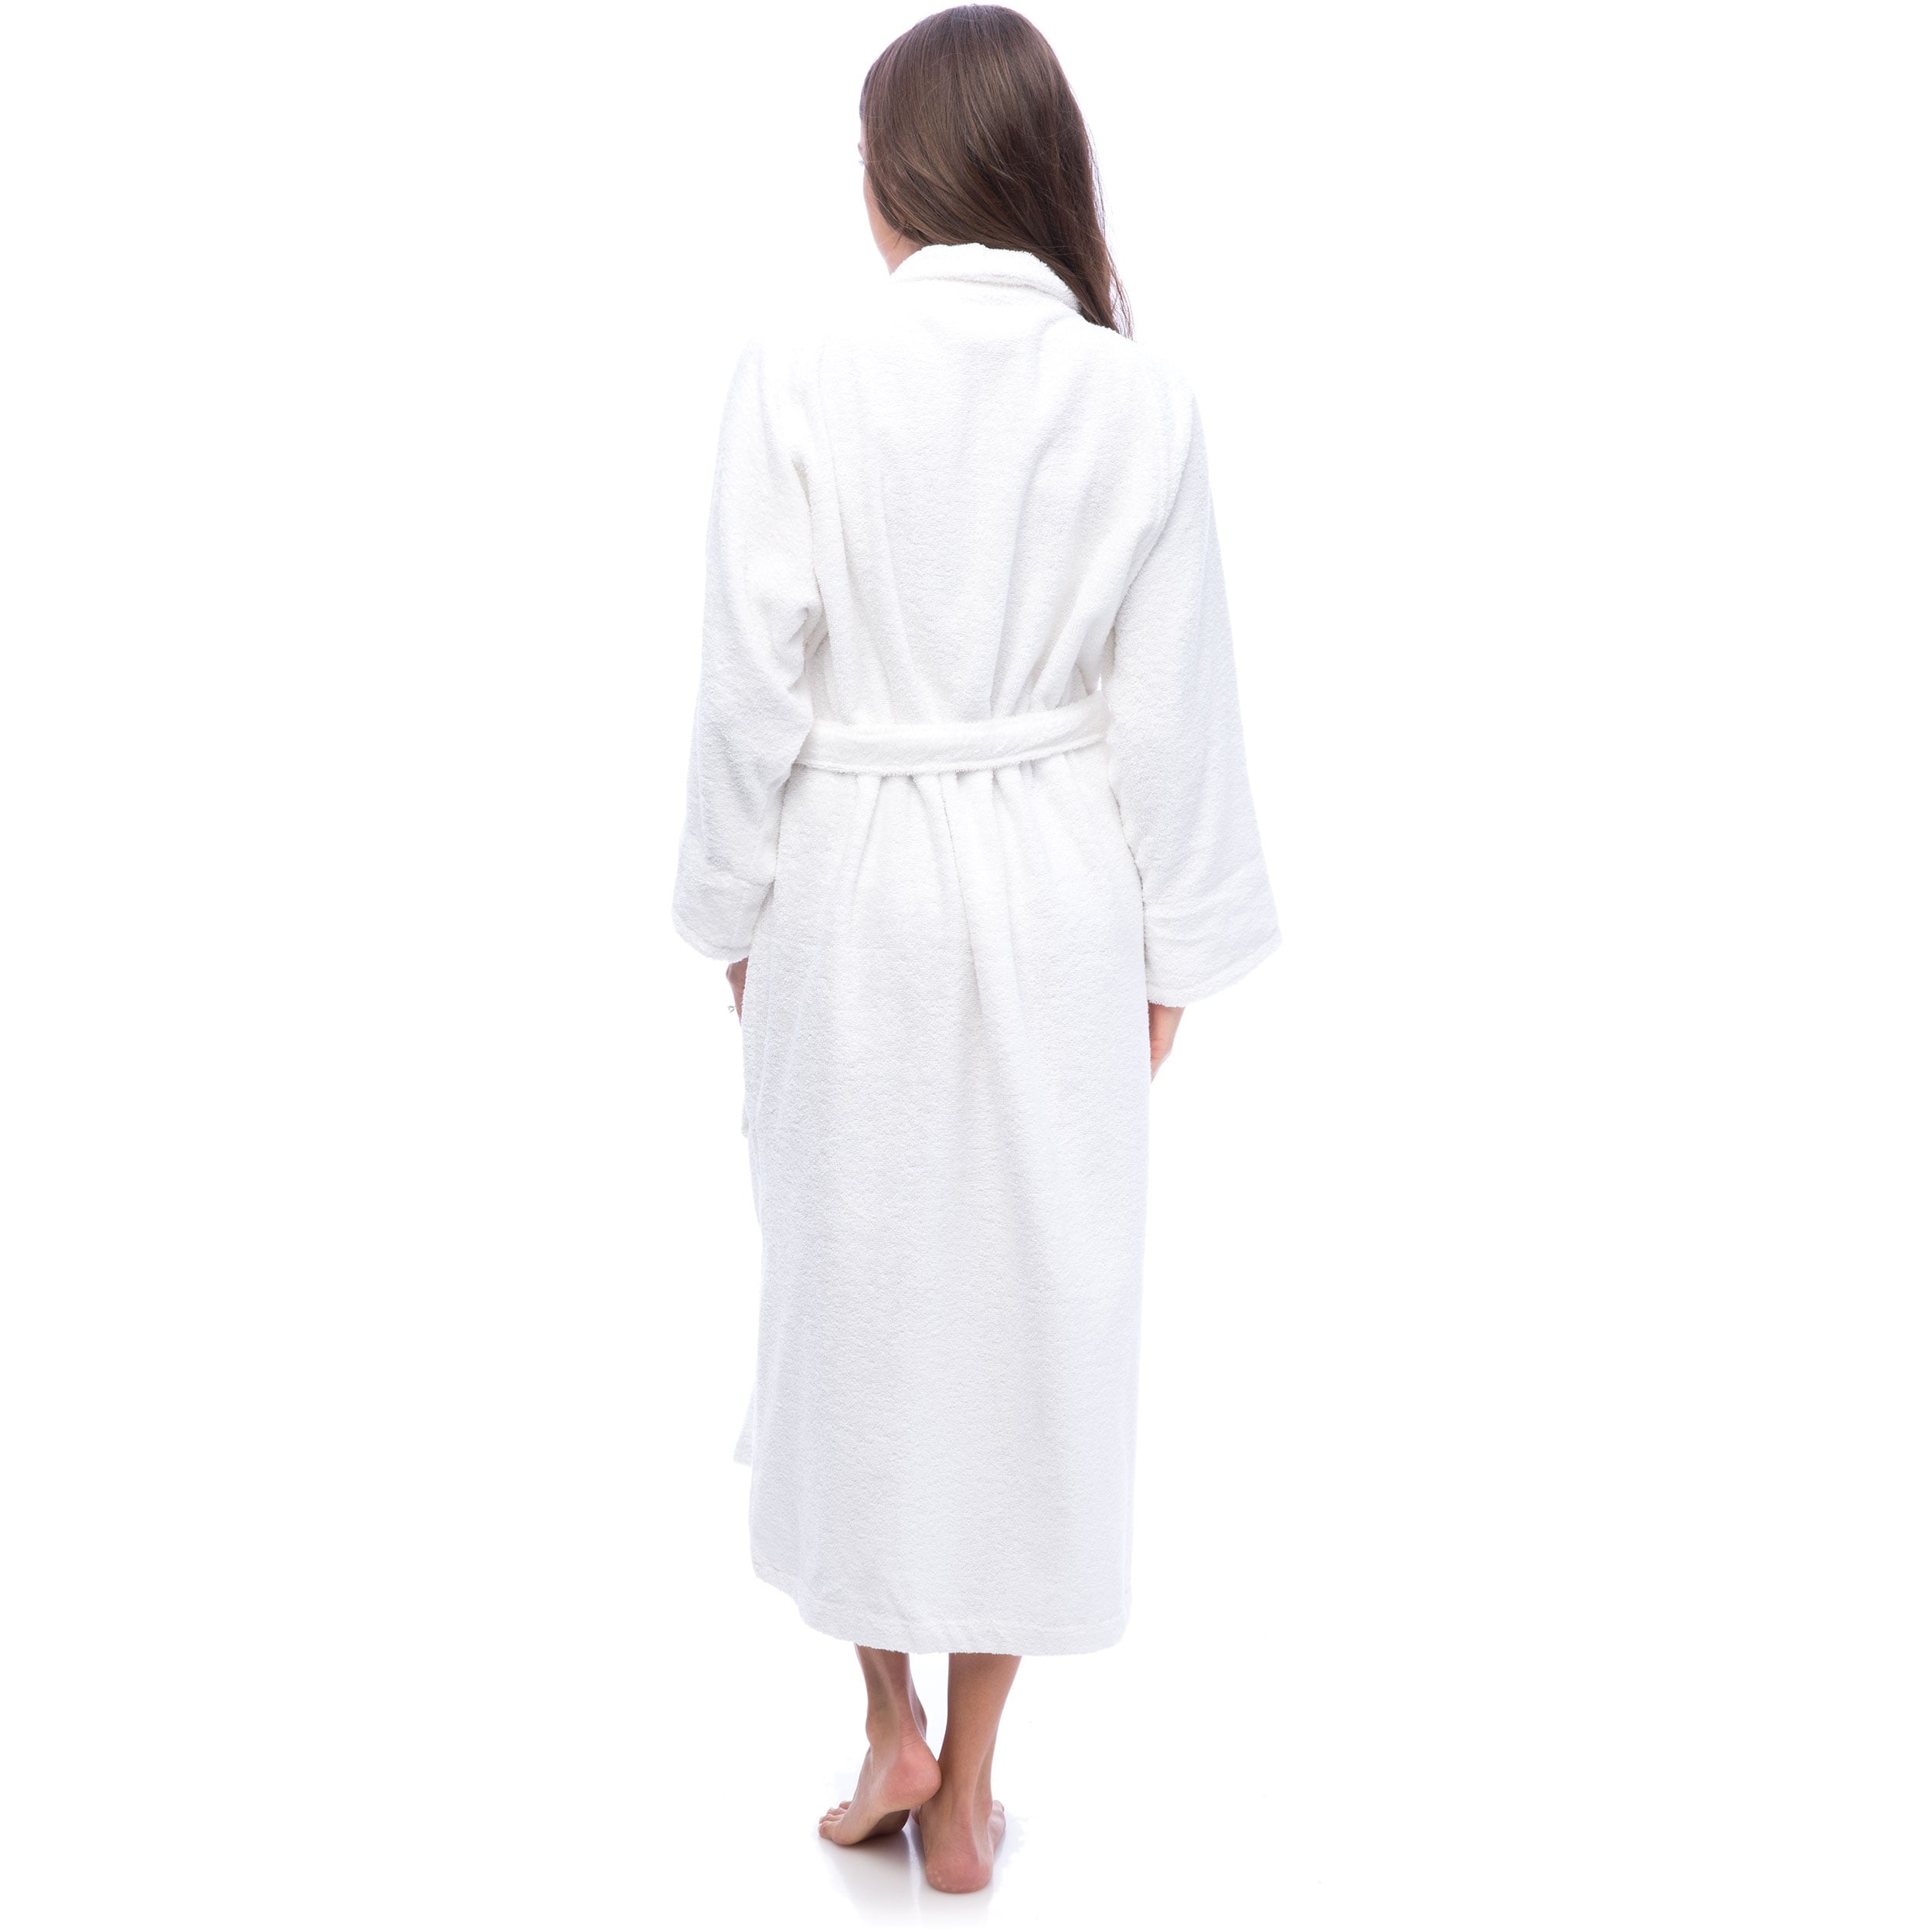 bef62d2ae8 Shop Superior Luxurious 100-percent Combed Cotton Unisex Terry Bath Robe -  On Sale - Free Shipping On Orders Over  45 - Overstock - 6632152